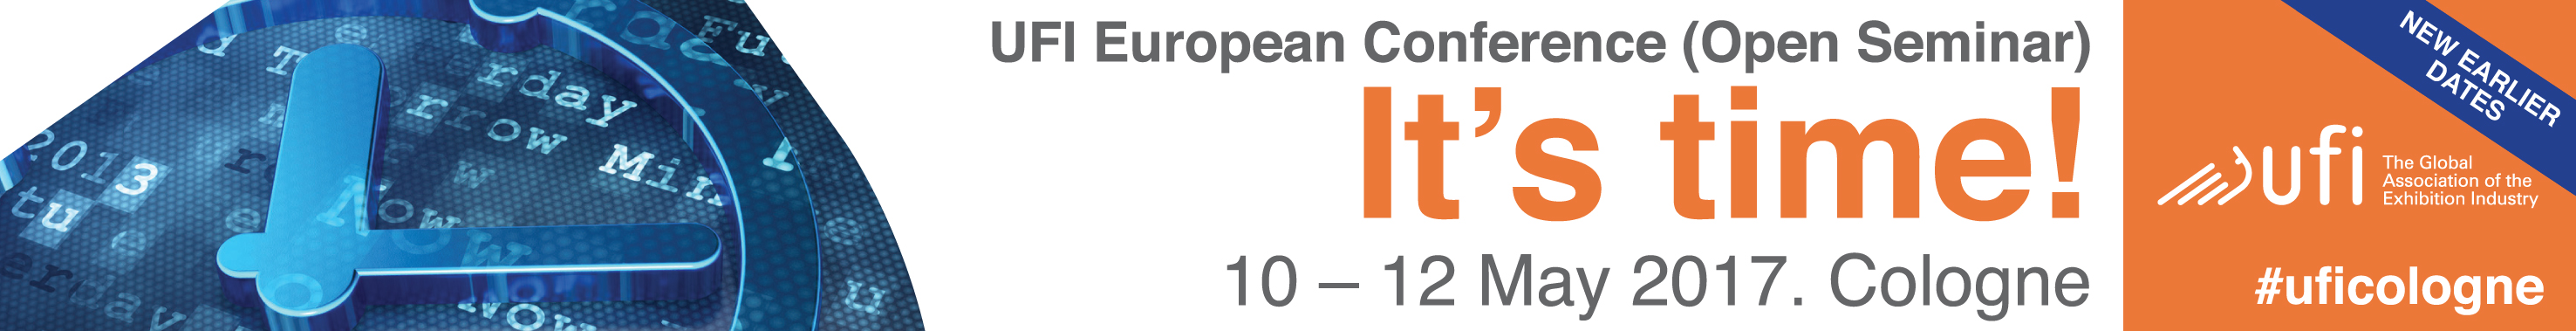 UFI-european-conference-banner